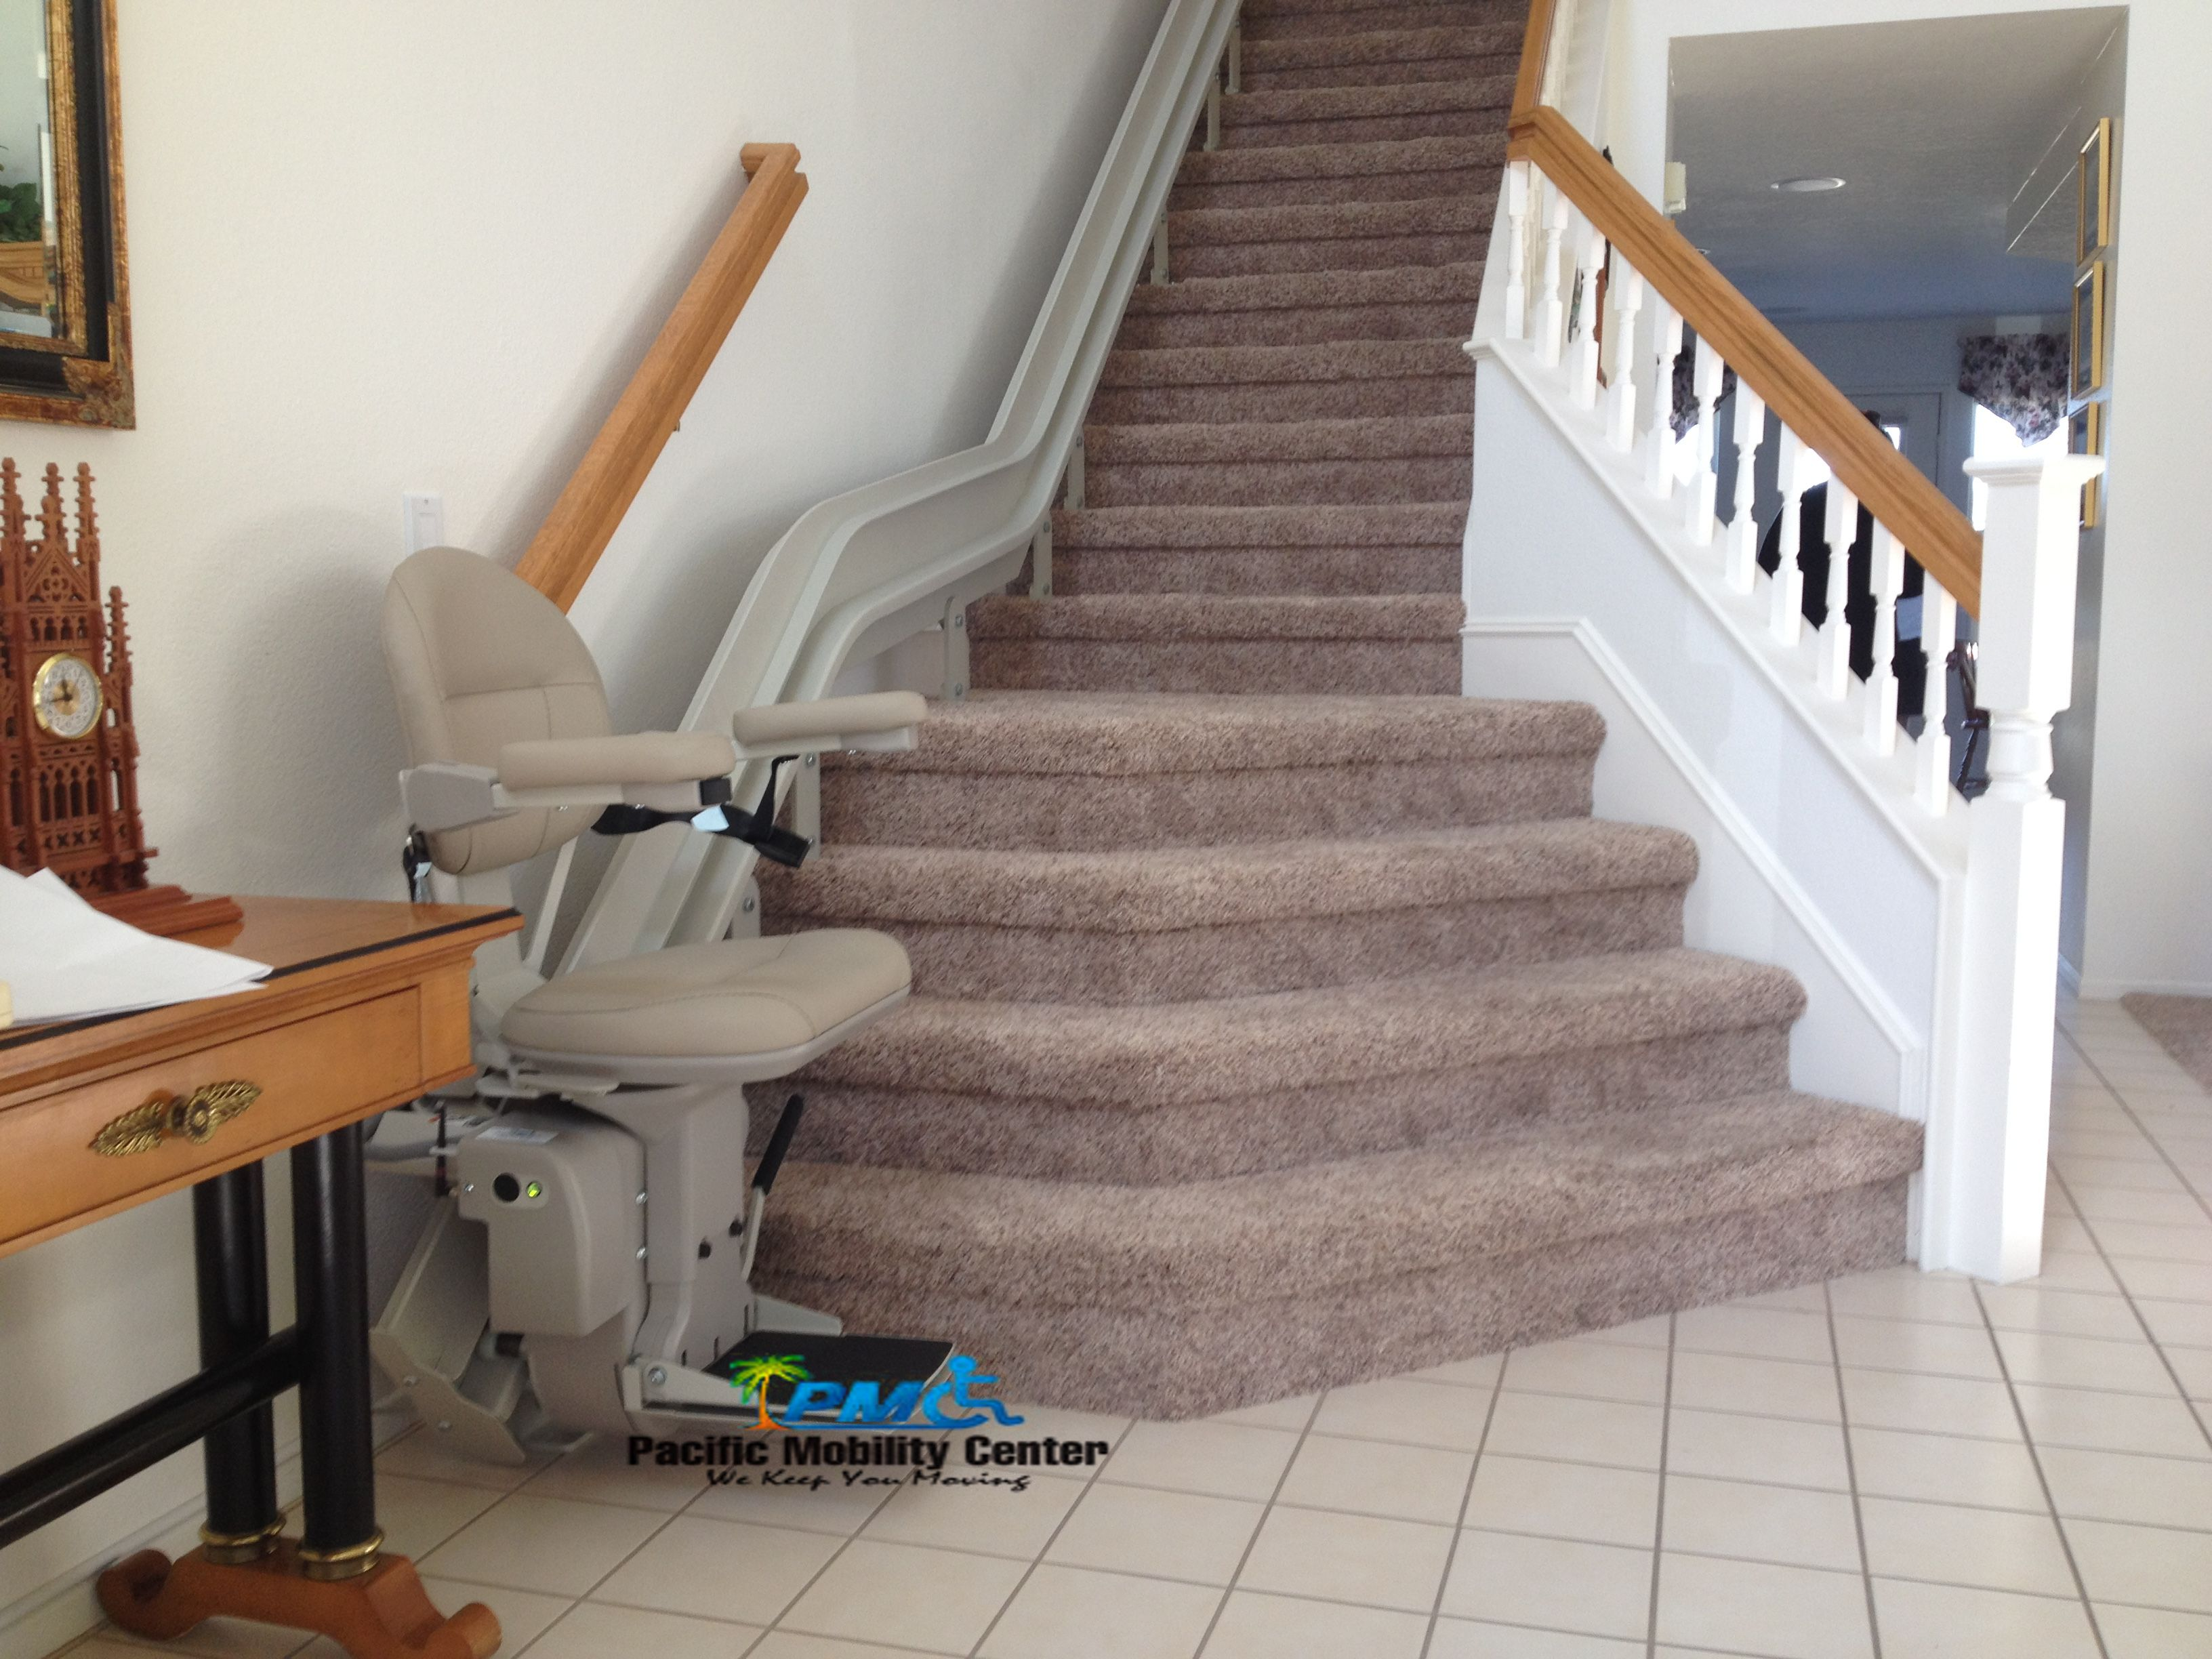 Custom Stairlift In Beautiful Missionviejo Home Tile Stairlift Stairchair Turningseat Handcontrols Ramping Handicap Home Lift Chairs Home Stair Lift